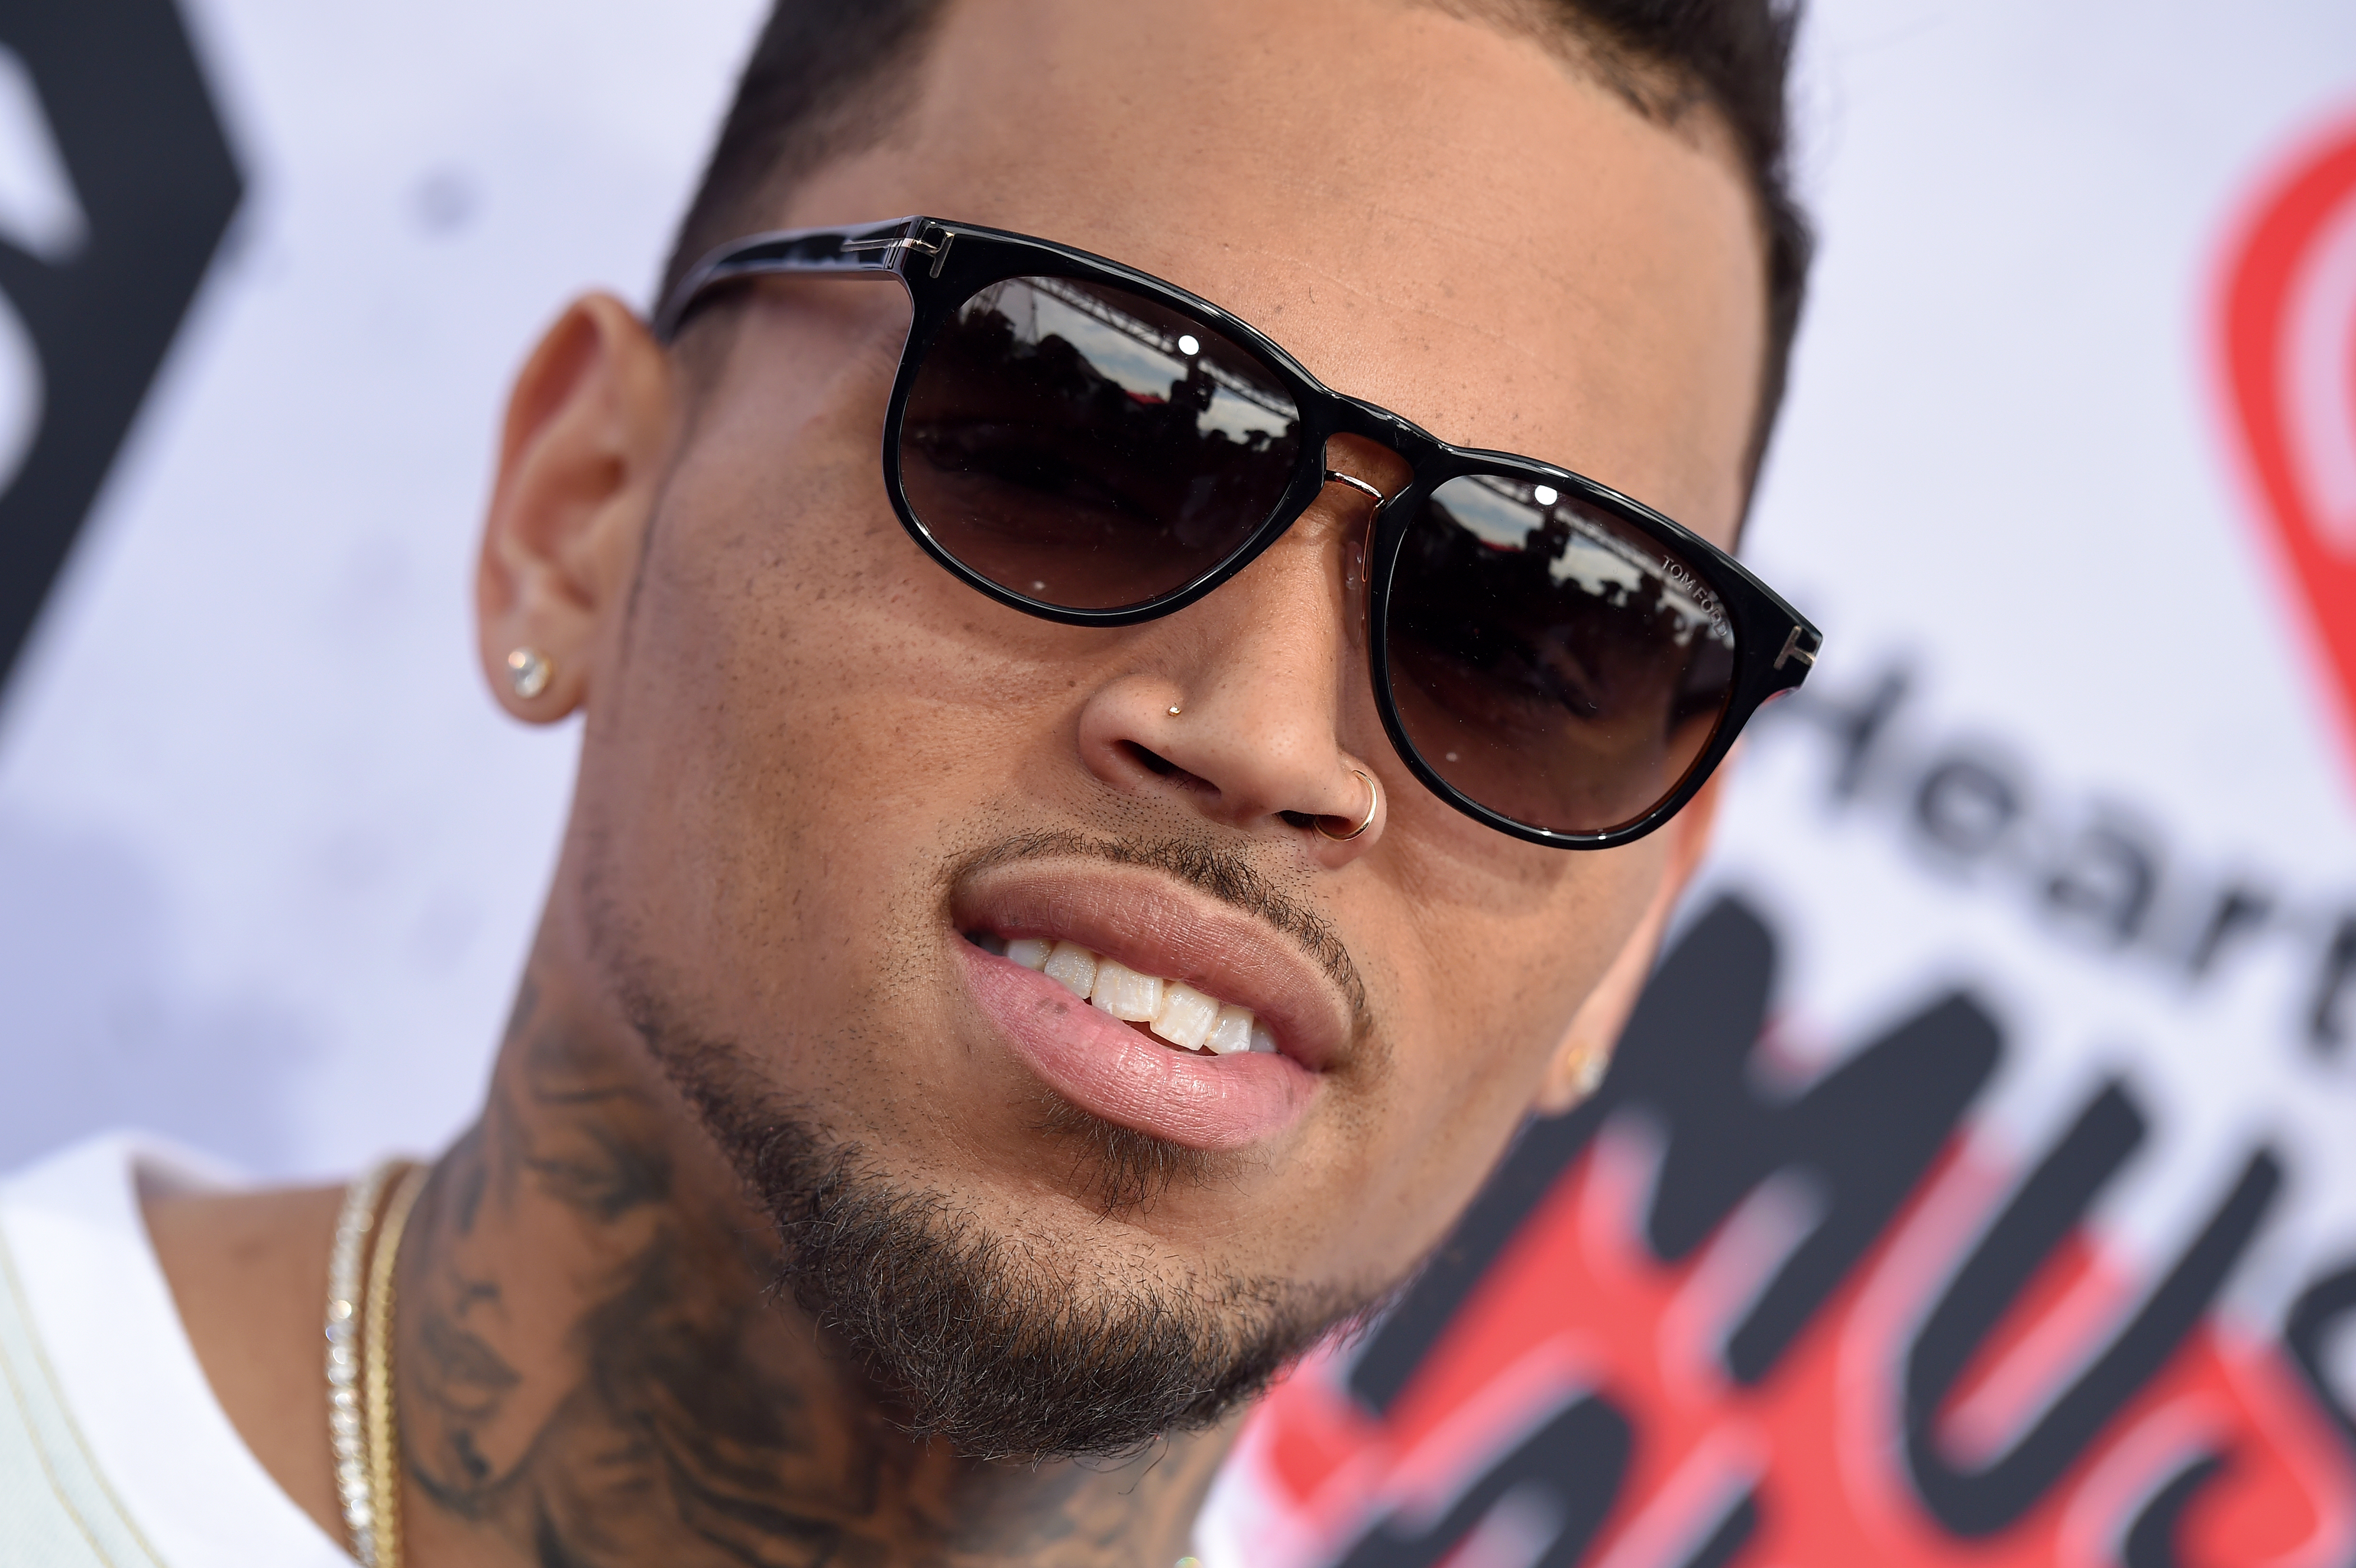 Chris Brown & His Baby Mama Back In Court | 100.3